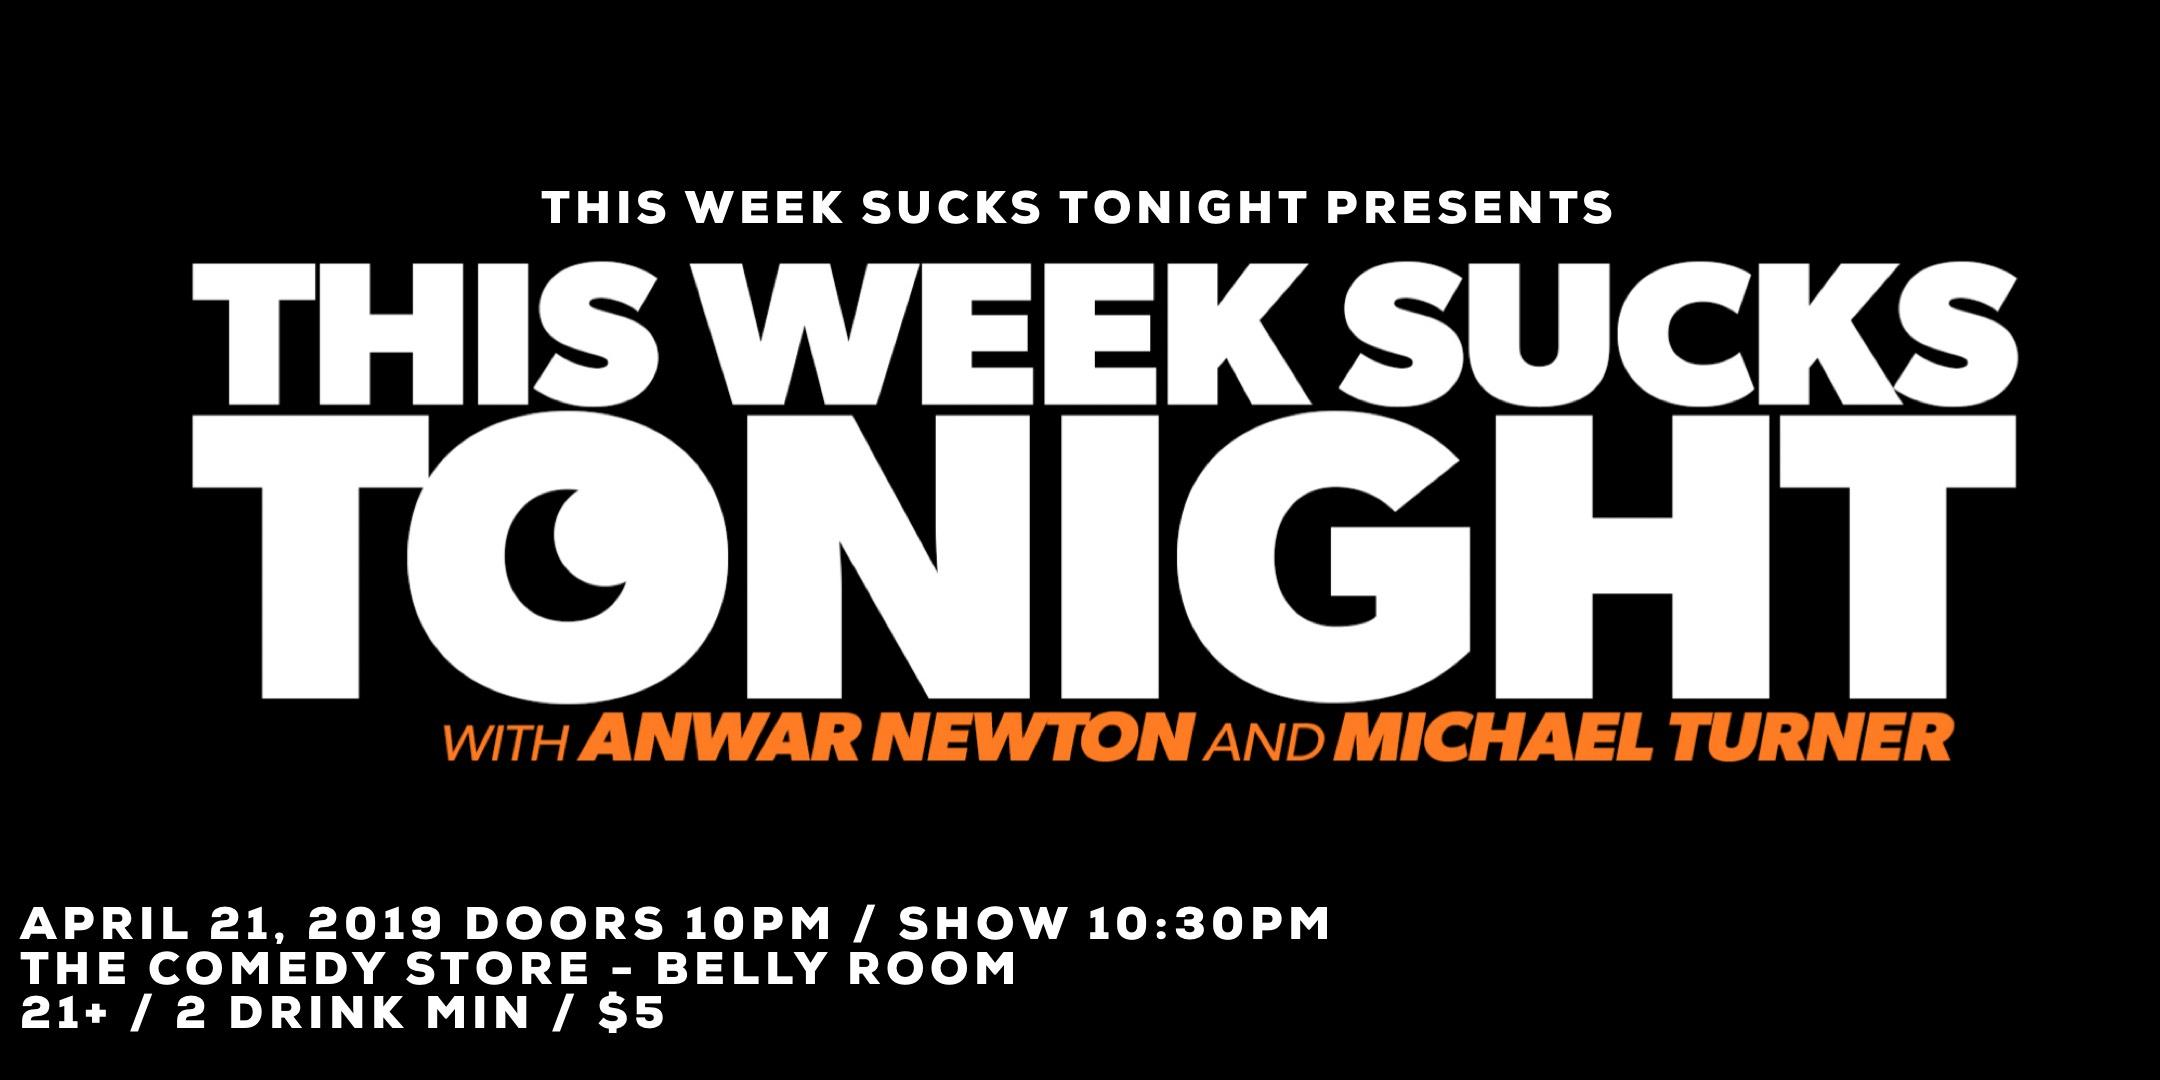 This Week Sucks Tonight